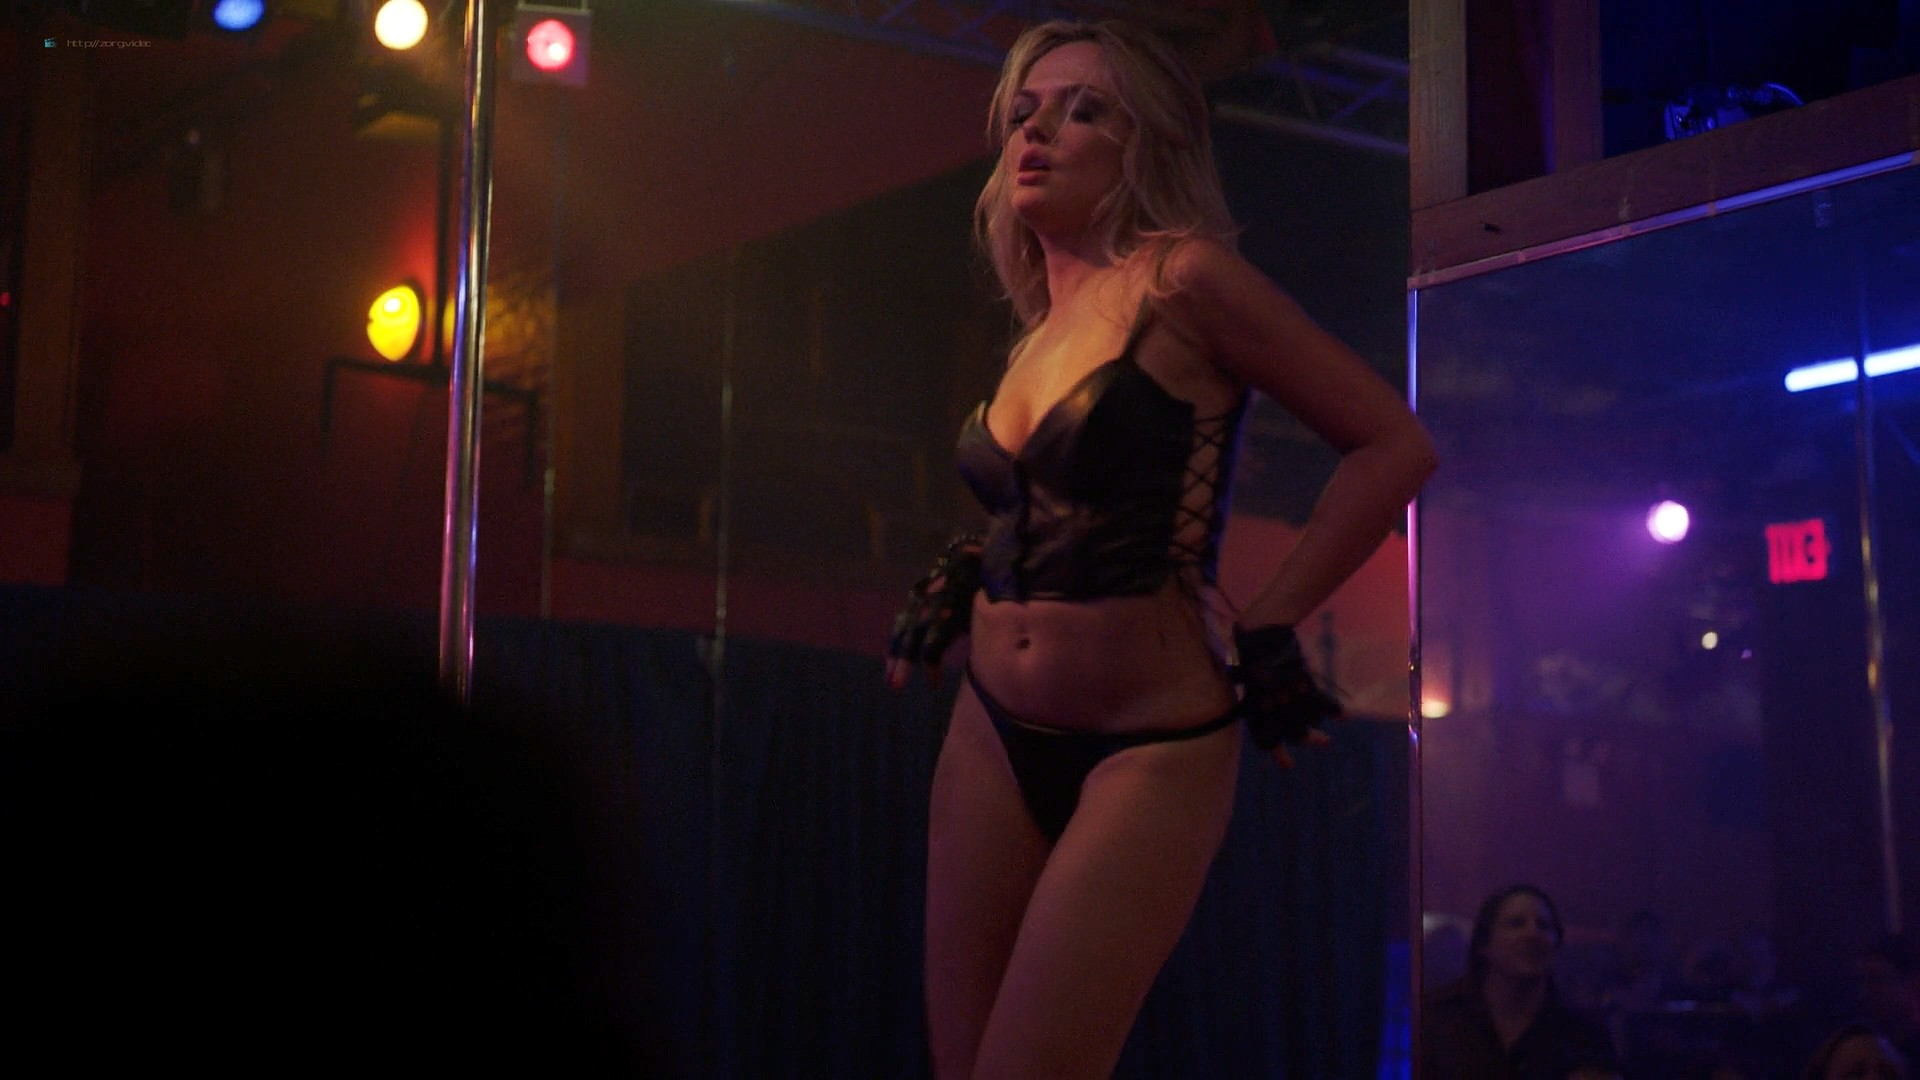 Emily Meade nude topless Samantha Steinmetz topless too - The Deuce (2019) s3e5 1080p (5)